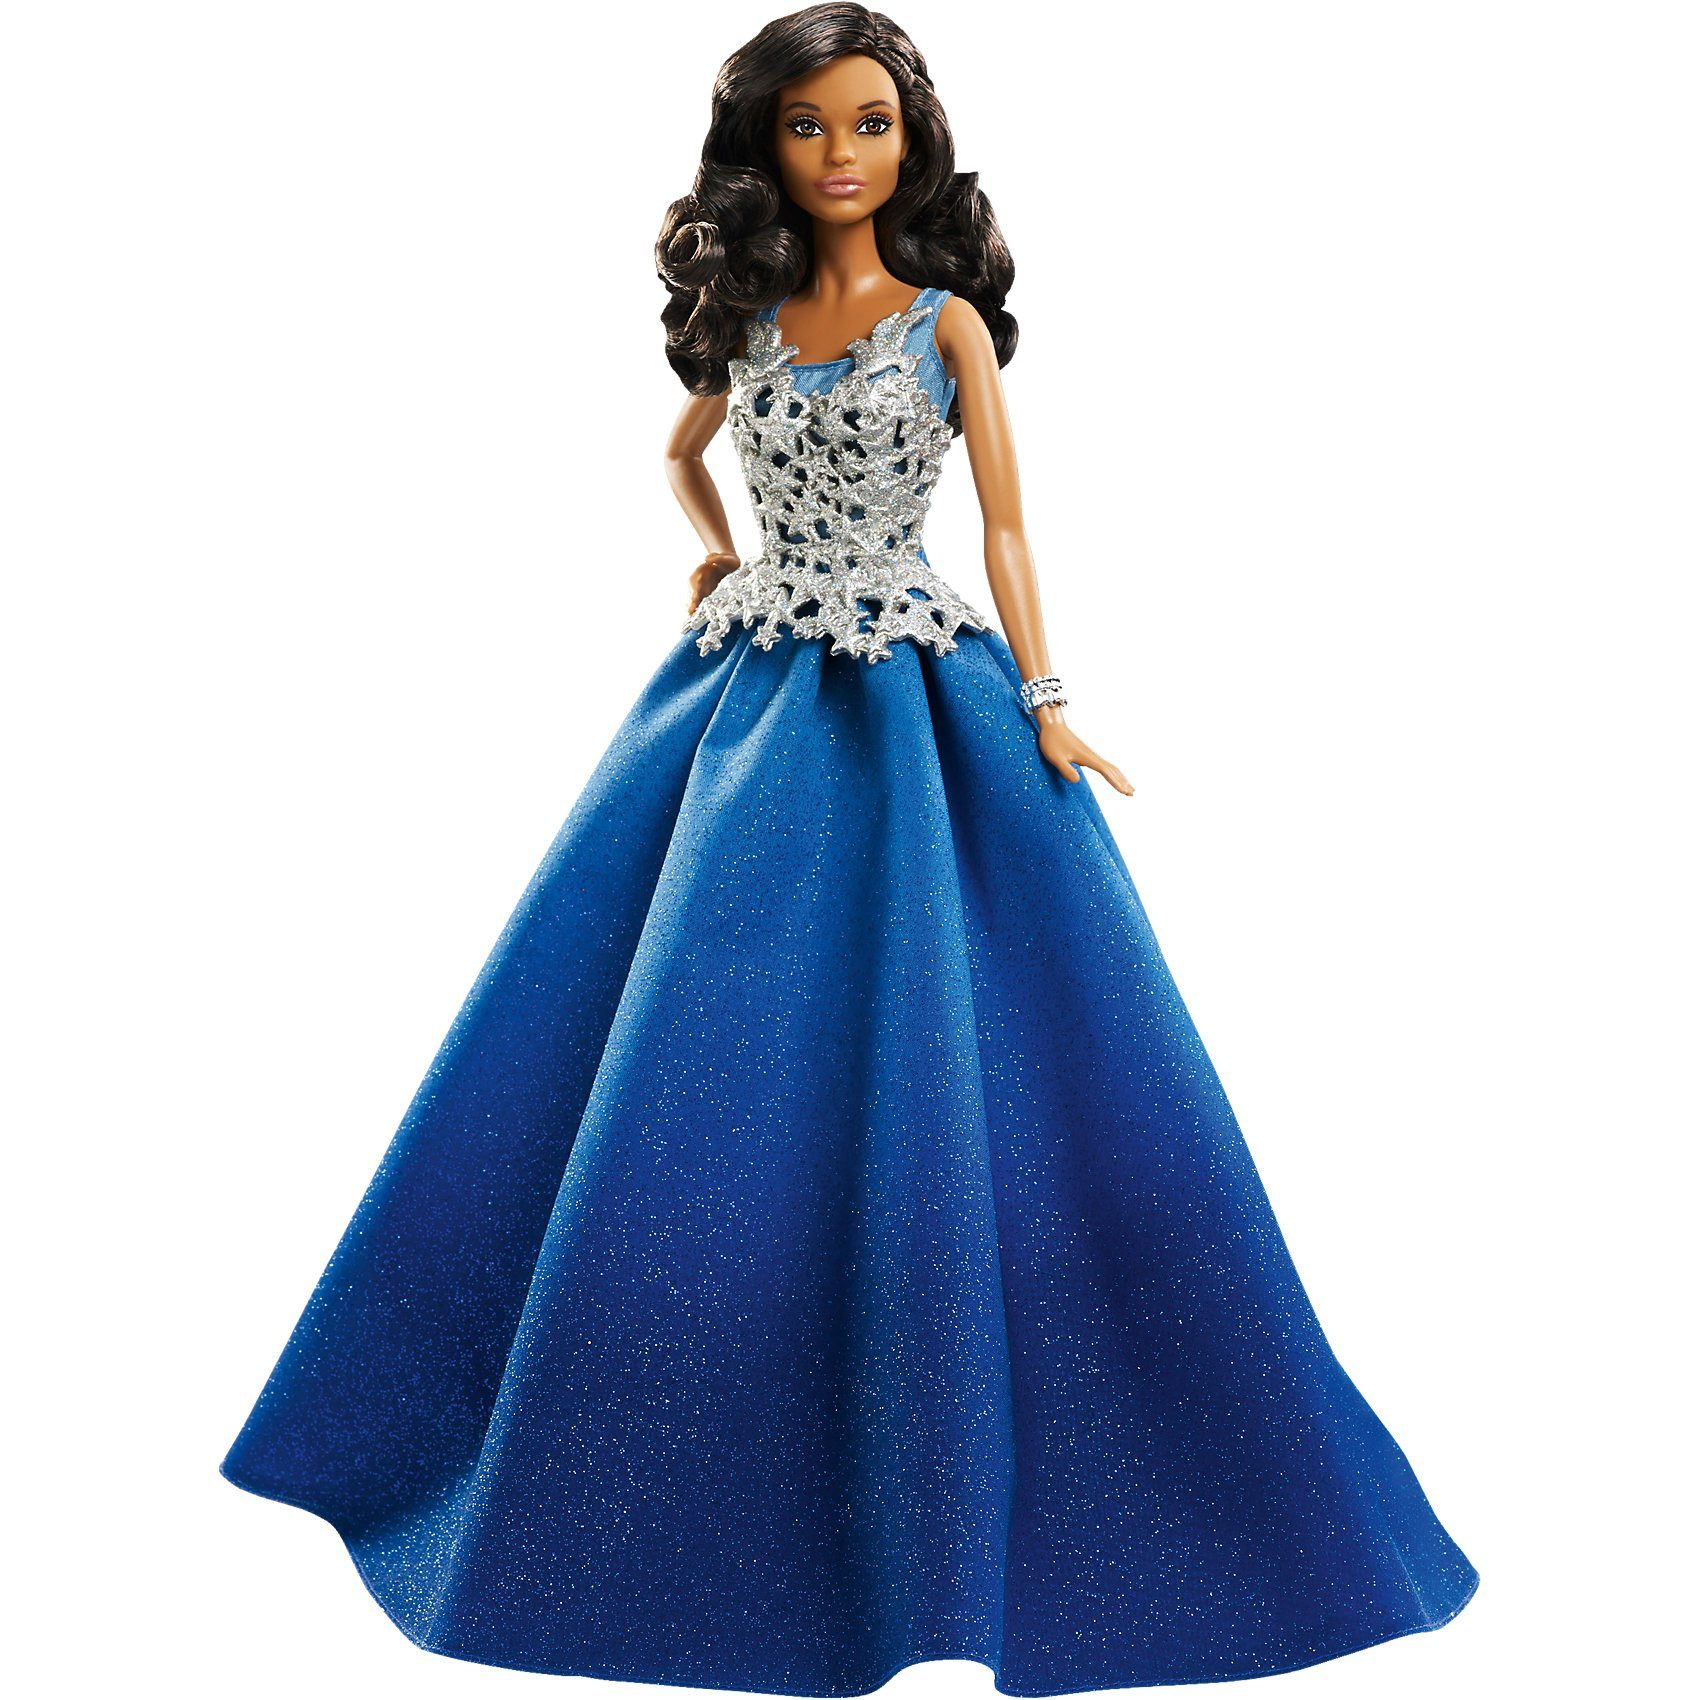 Mattel 2016 Holiday Barbie im blauen Kleid